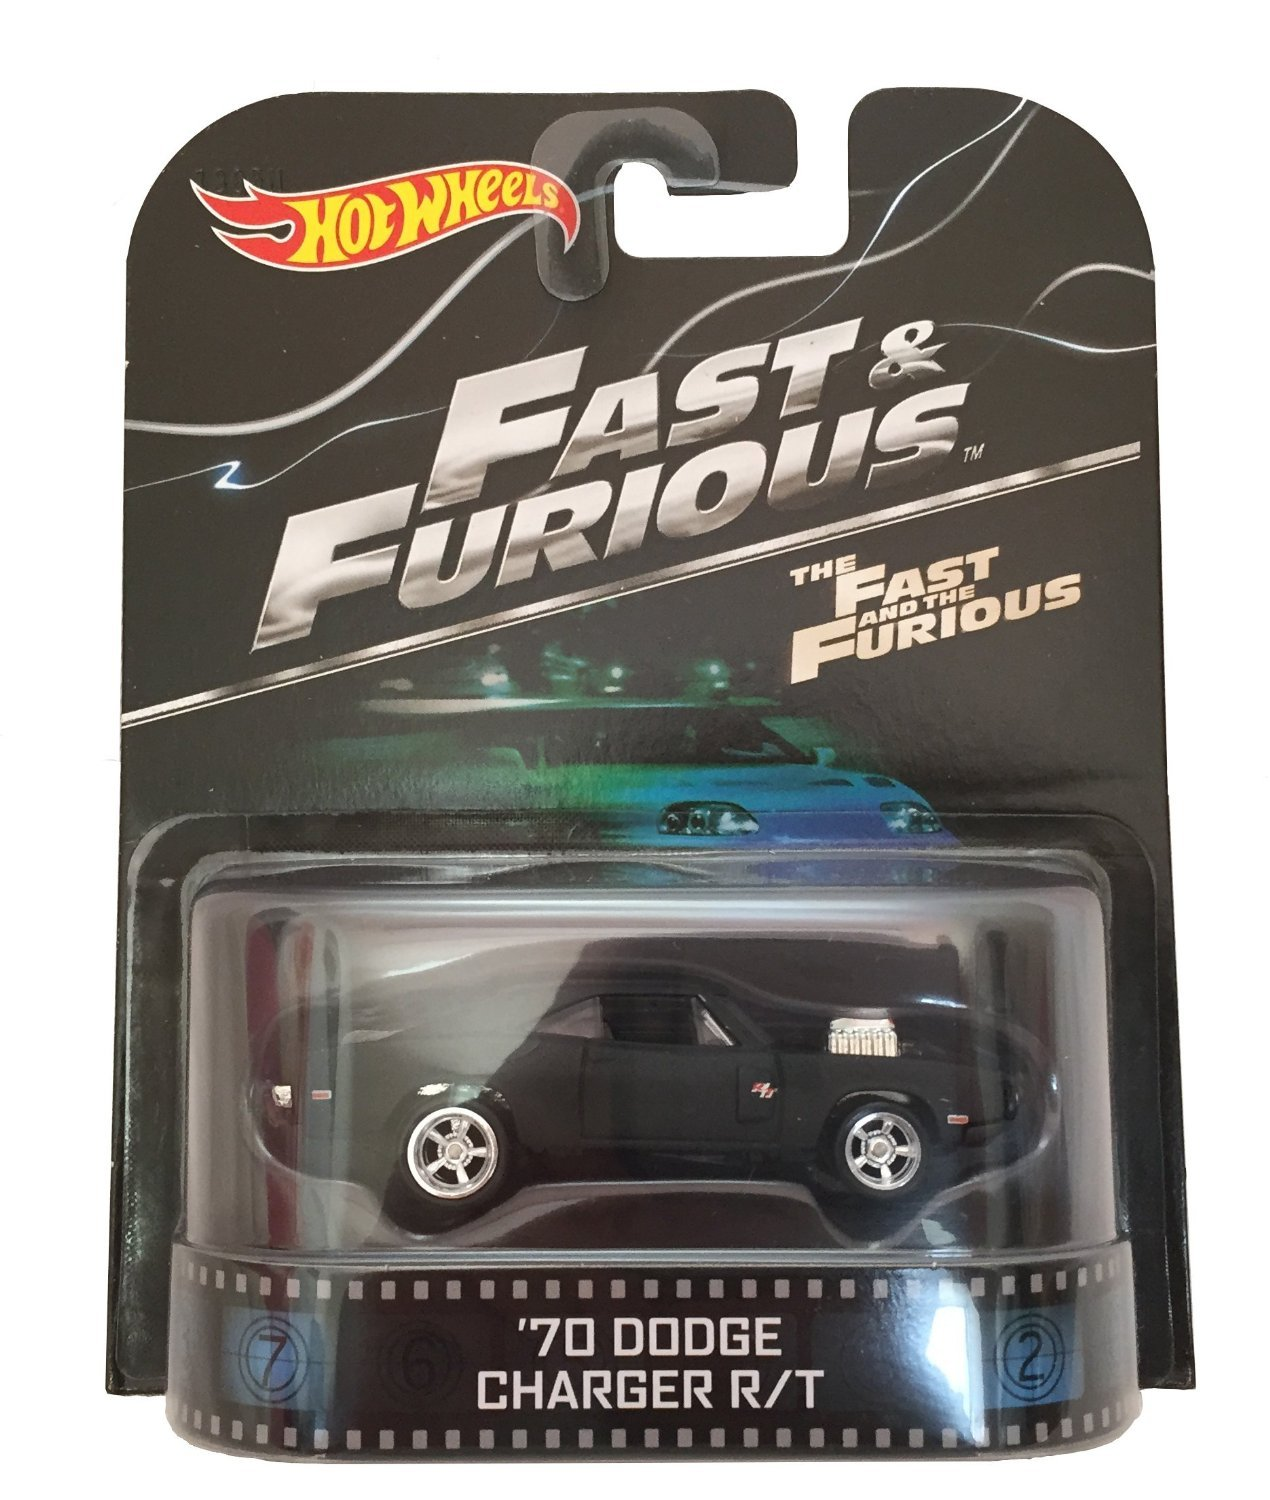 "'70 Dodge Charger R/T ""Fast & Furious"" Hot Wheels 2015 Retro Series 1/64 Die Cast Vehicle"